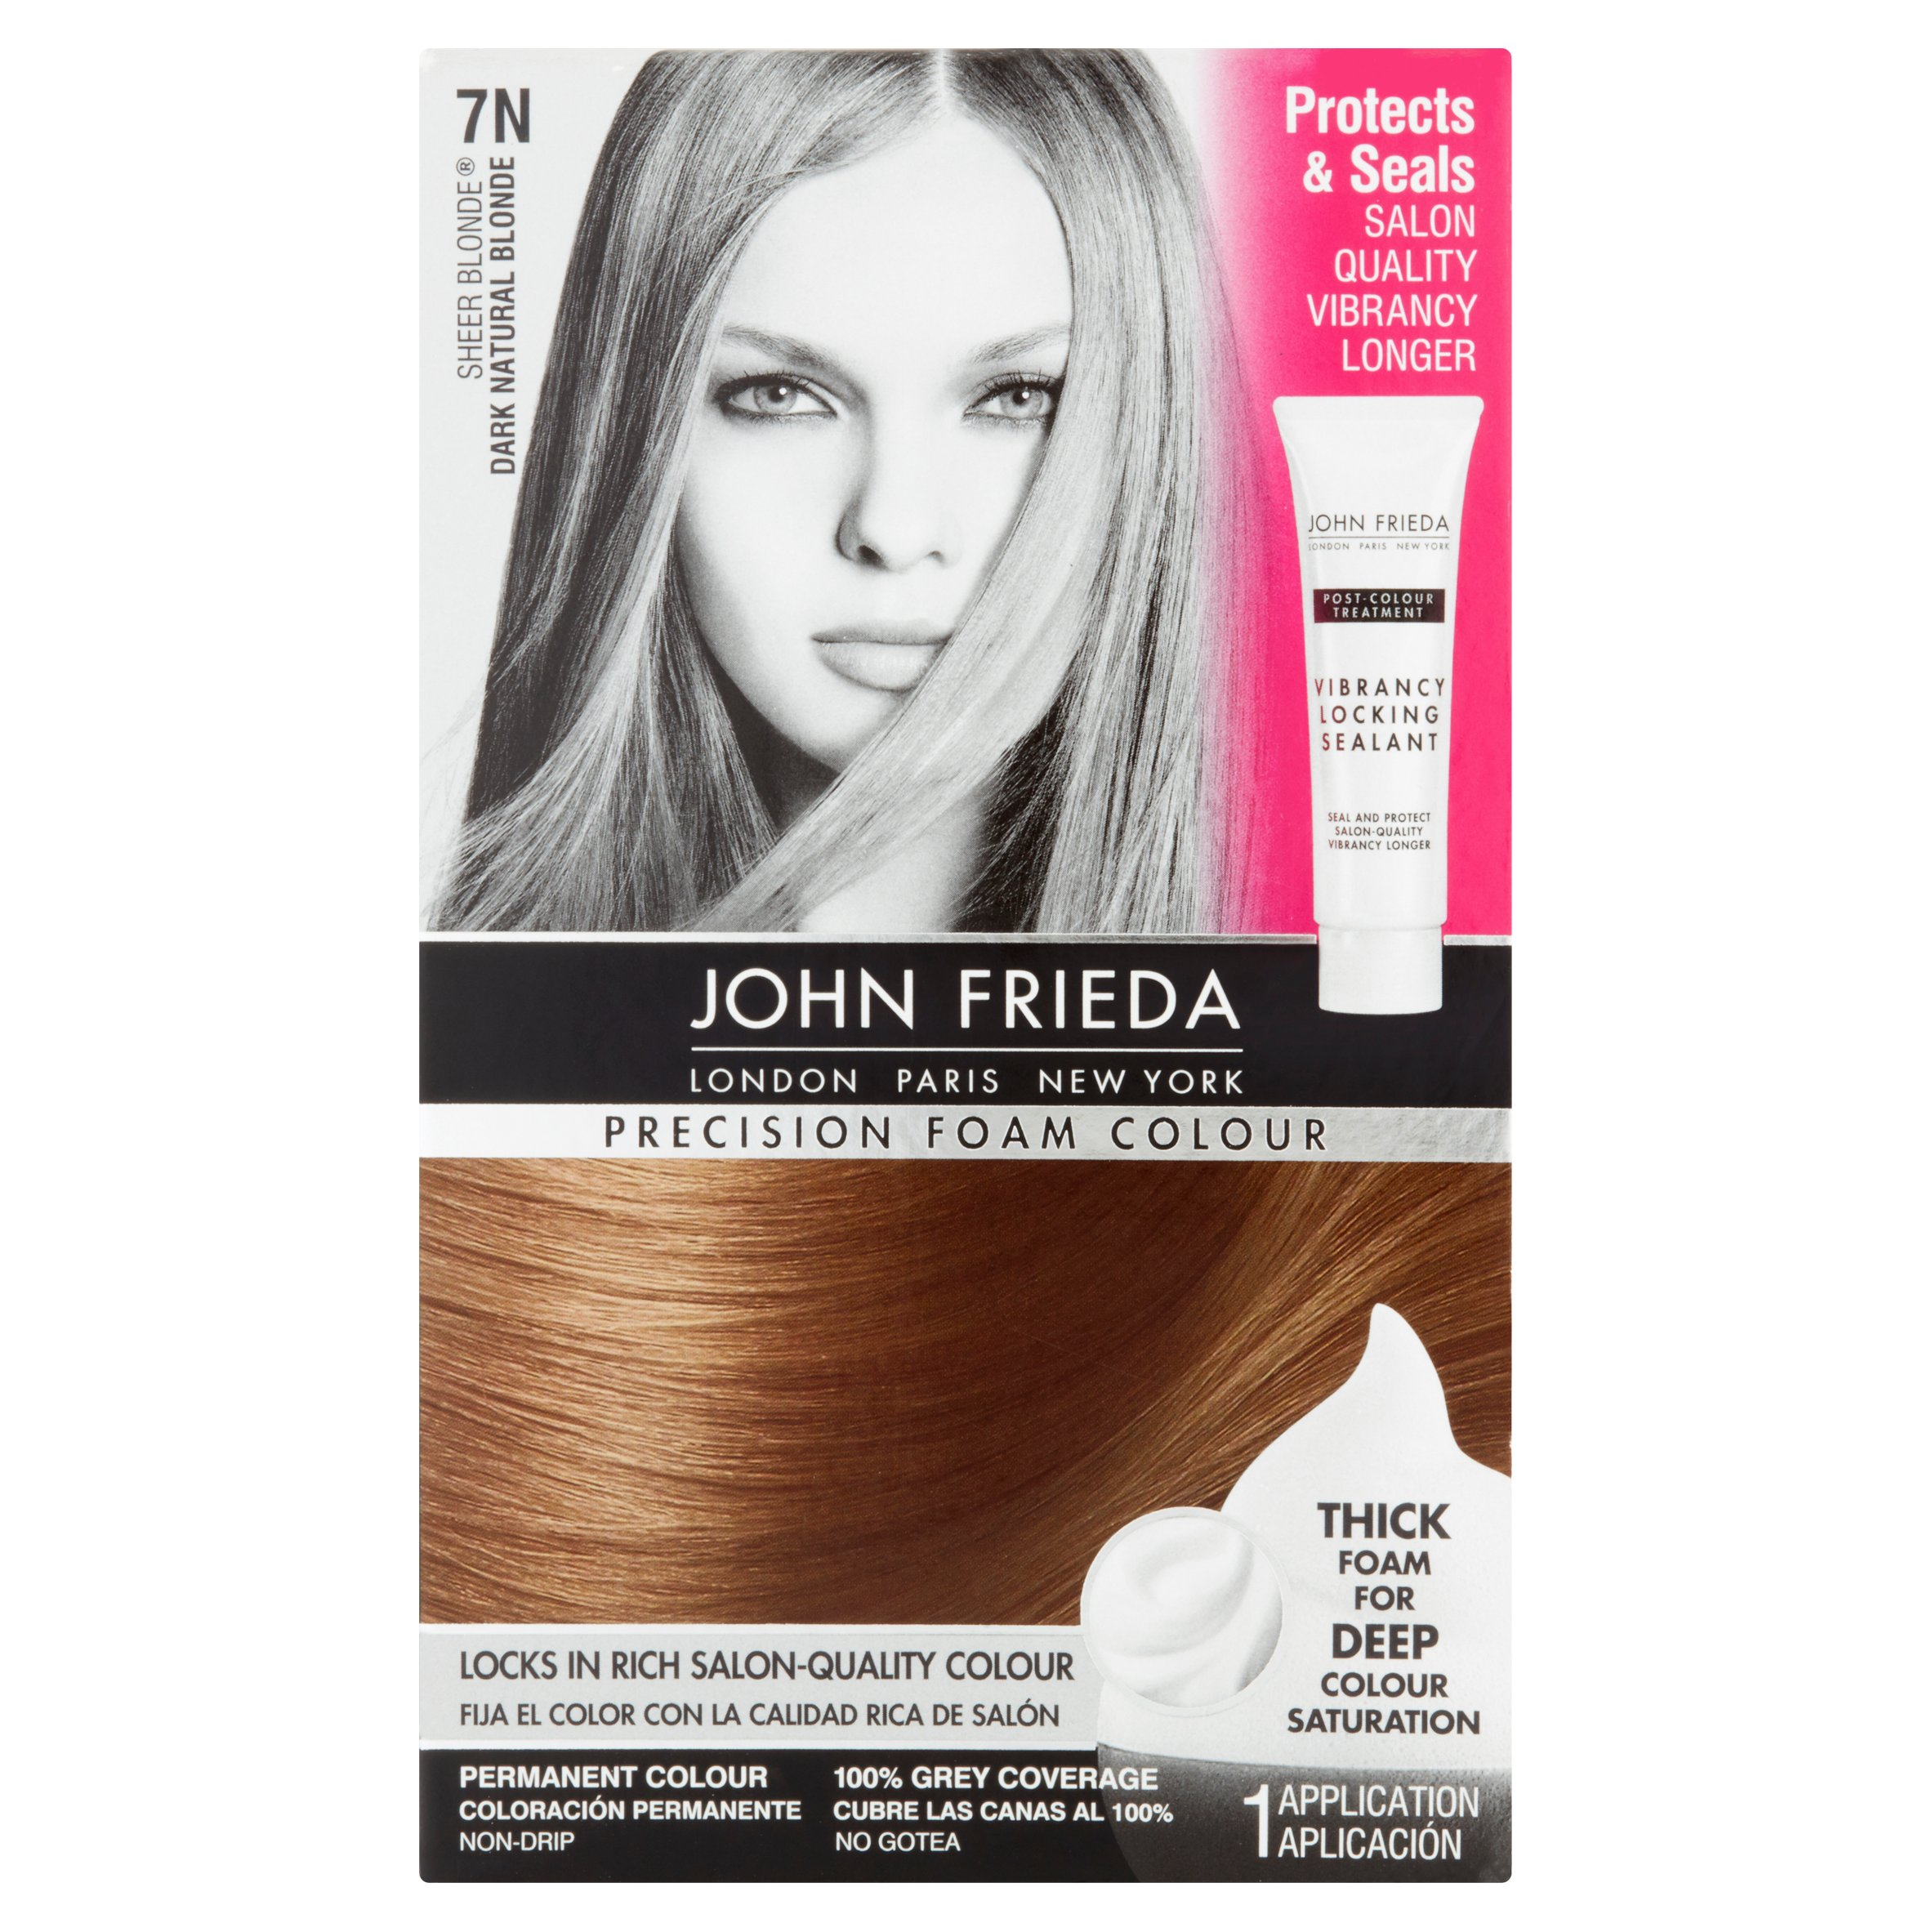 John Frieda Sheer Blonde 7N Dark Natural Blonde Precision Foam Colour, 1 application